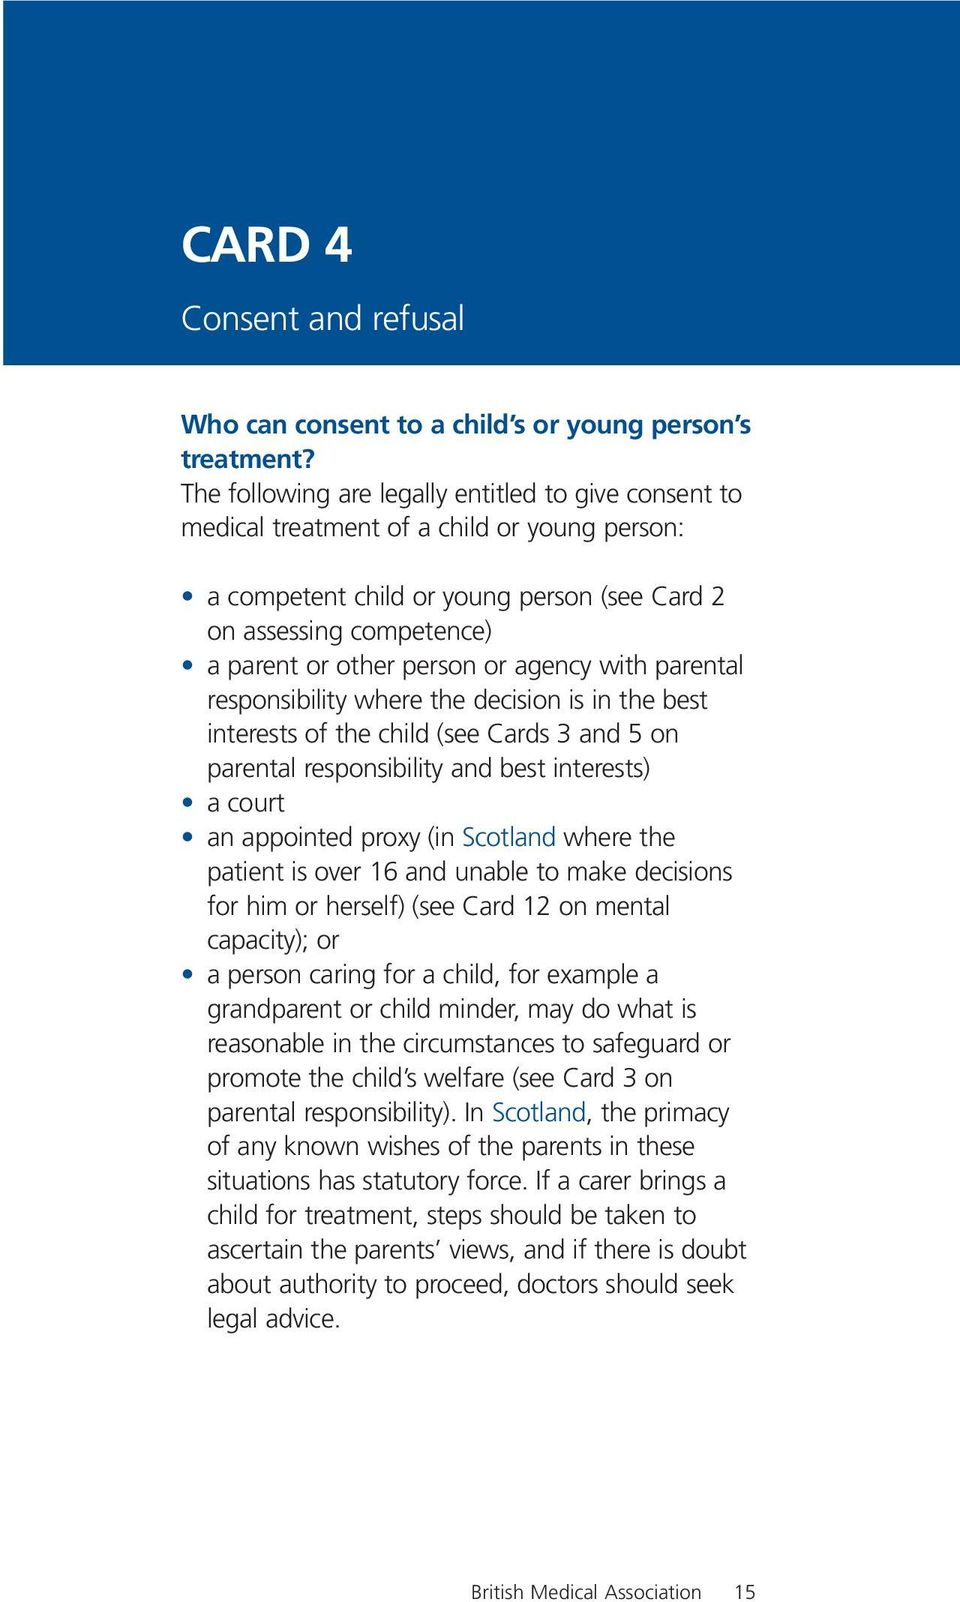 agency with parental responsibility where the decision is in the best interests of the child (see Cards 3 and 5 on parental responsibility and best interests) a court an appointed proxy (in Scotland